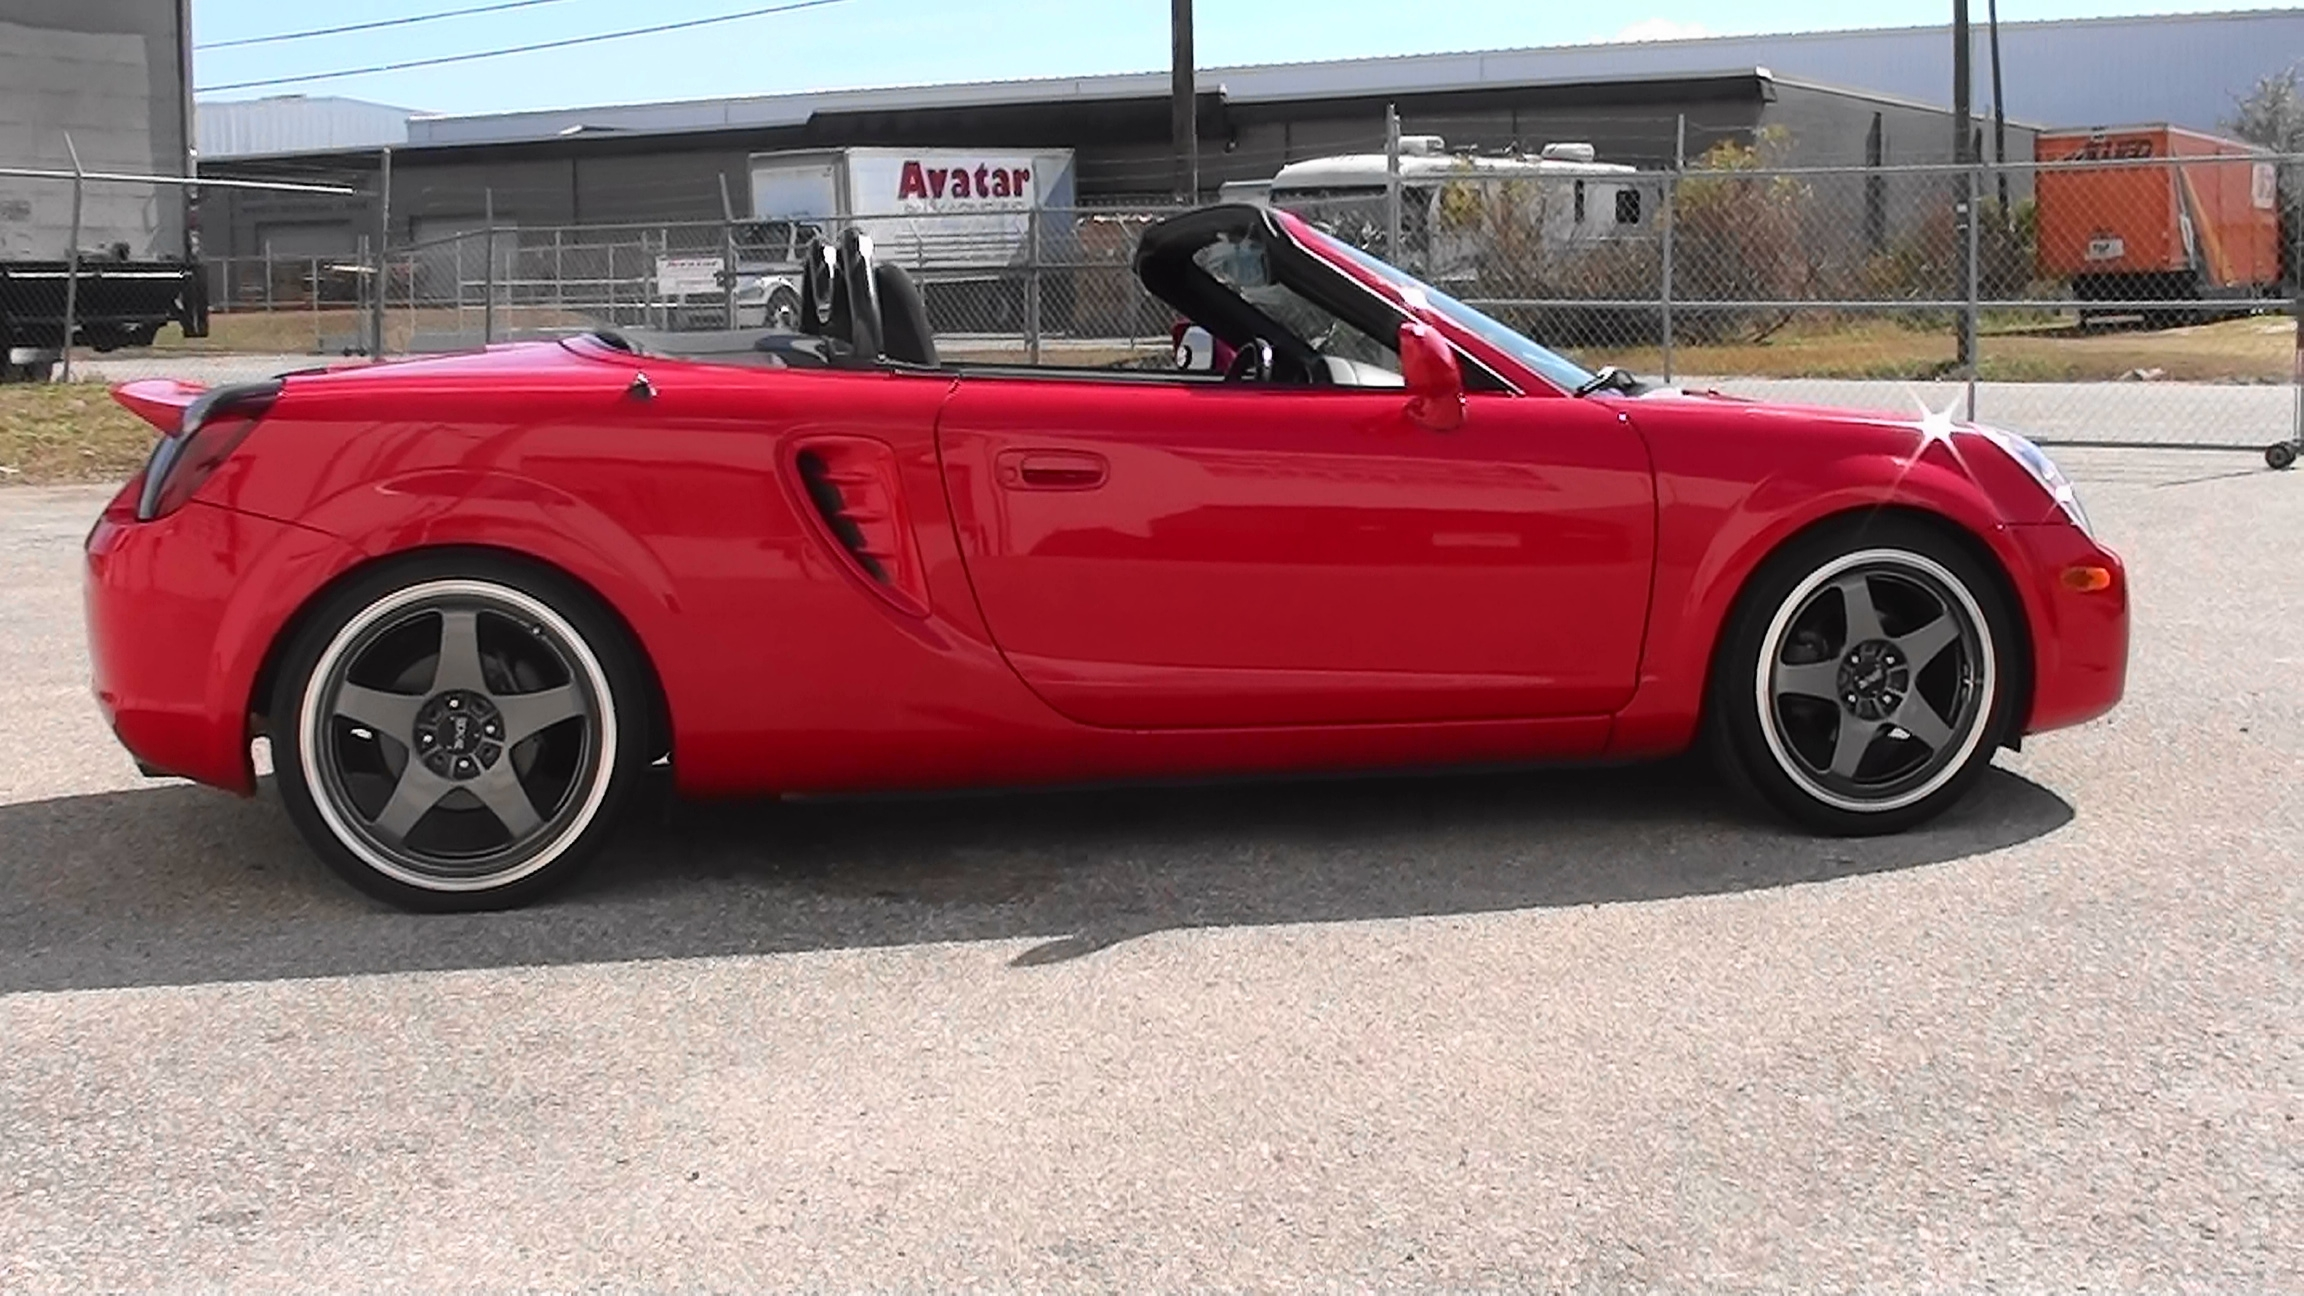 Autoxtyle2 2003 toyota mr2 spyderconvertible 2d specs photos modification info at cardomain for Mr2 spyder interior accessories